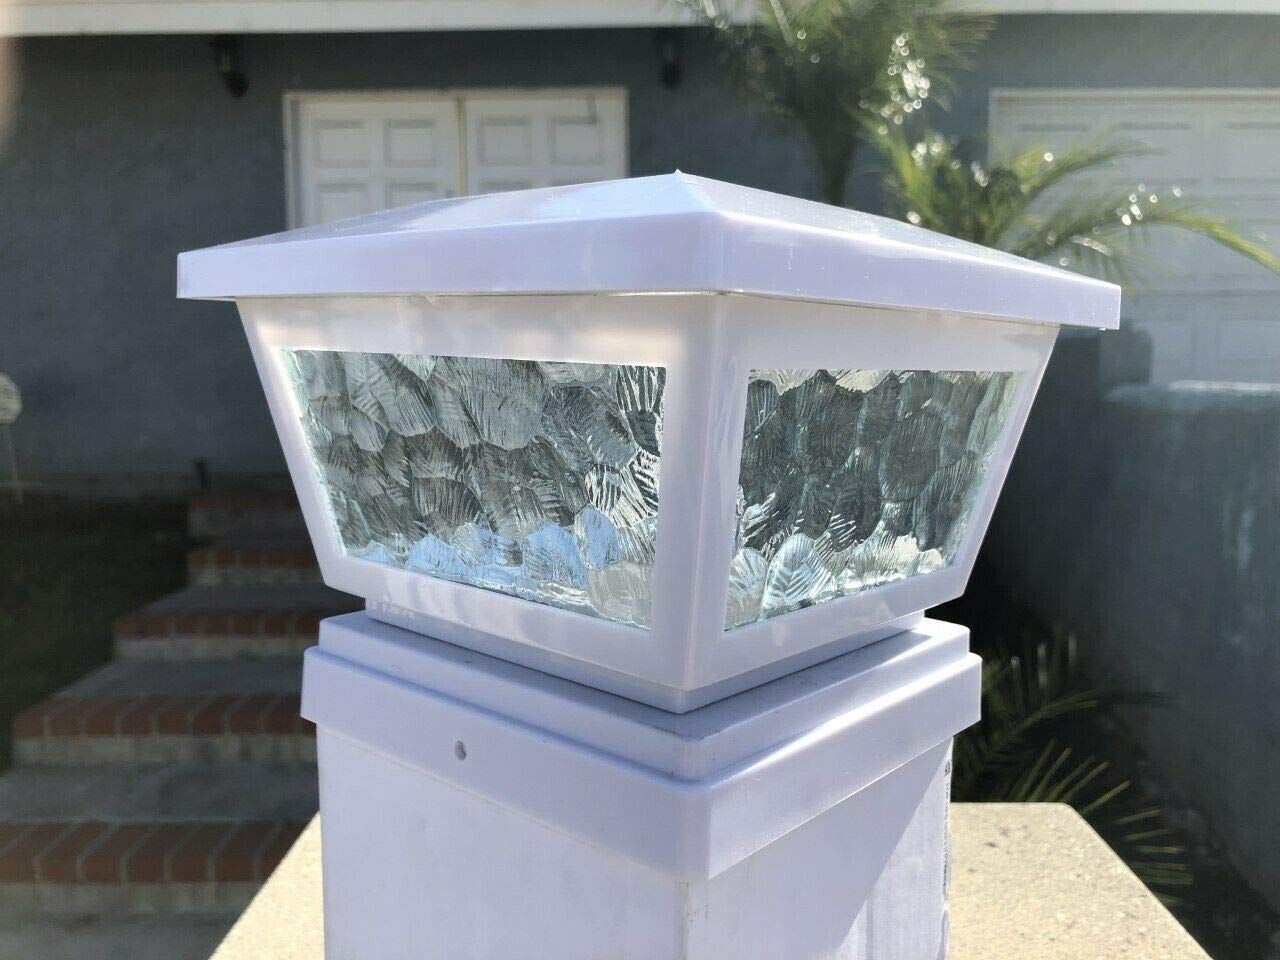 Ntertainment House 2-pcs Solar Post Cap Lights with Pebbled Print Glass Frames and 2 Ultra Bright SMD LEDs w/Optional Wall Mount 6x6 5x5 or 4x4 Base adapters (White, 4x4) by Ntertainment House